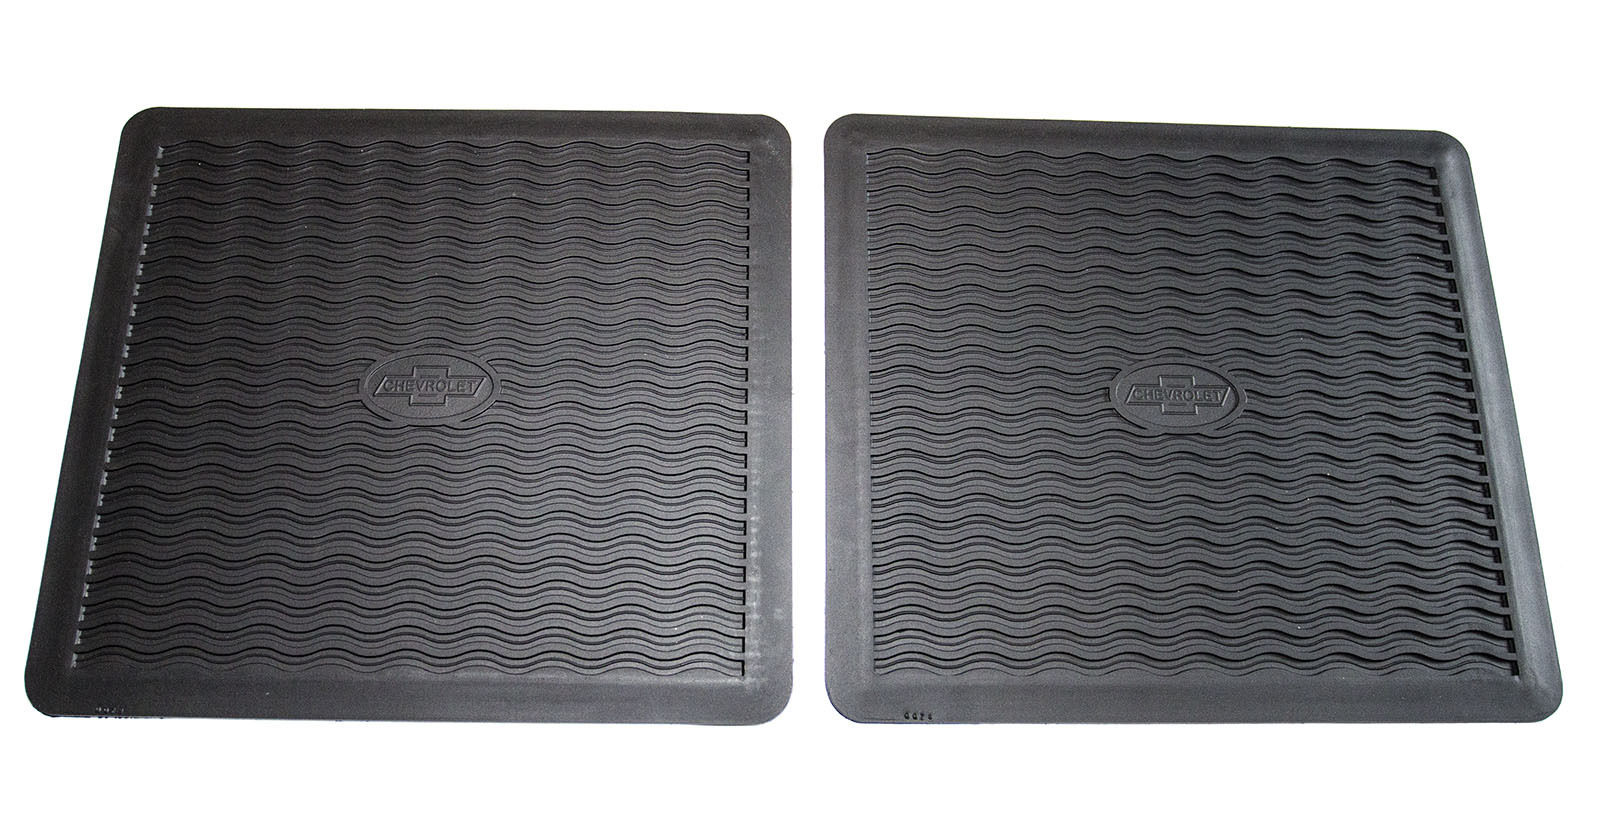 1955 1956 Chevy Factory Accessory Floor Mats BLACK